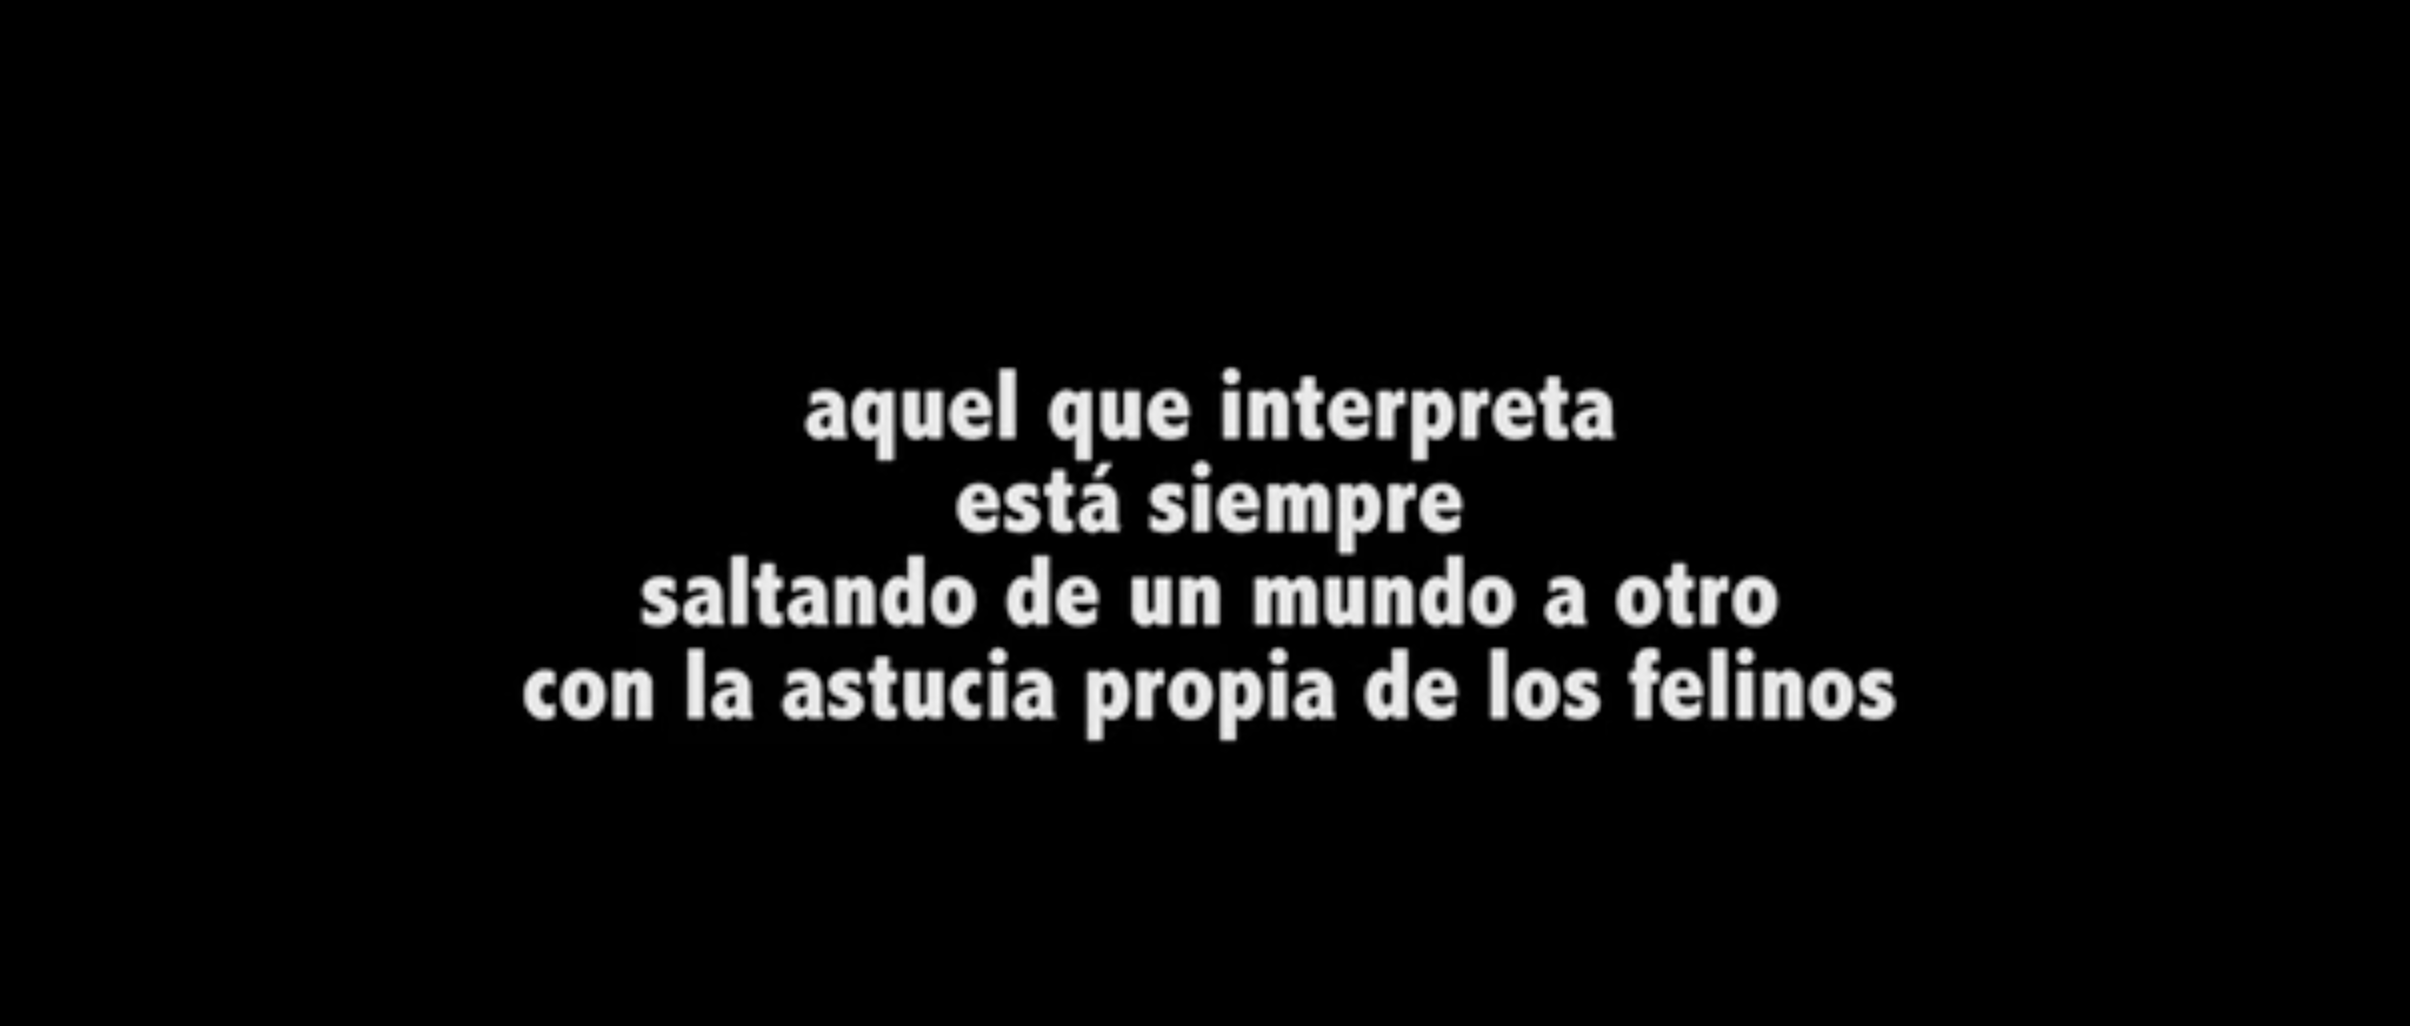 Screen Shot 2018-09-10 at 6.24.18 PM.png